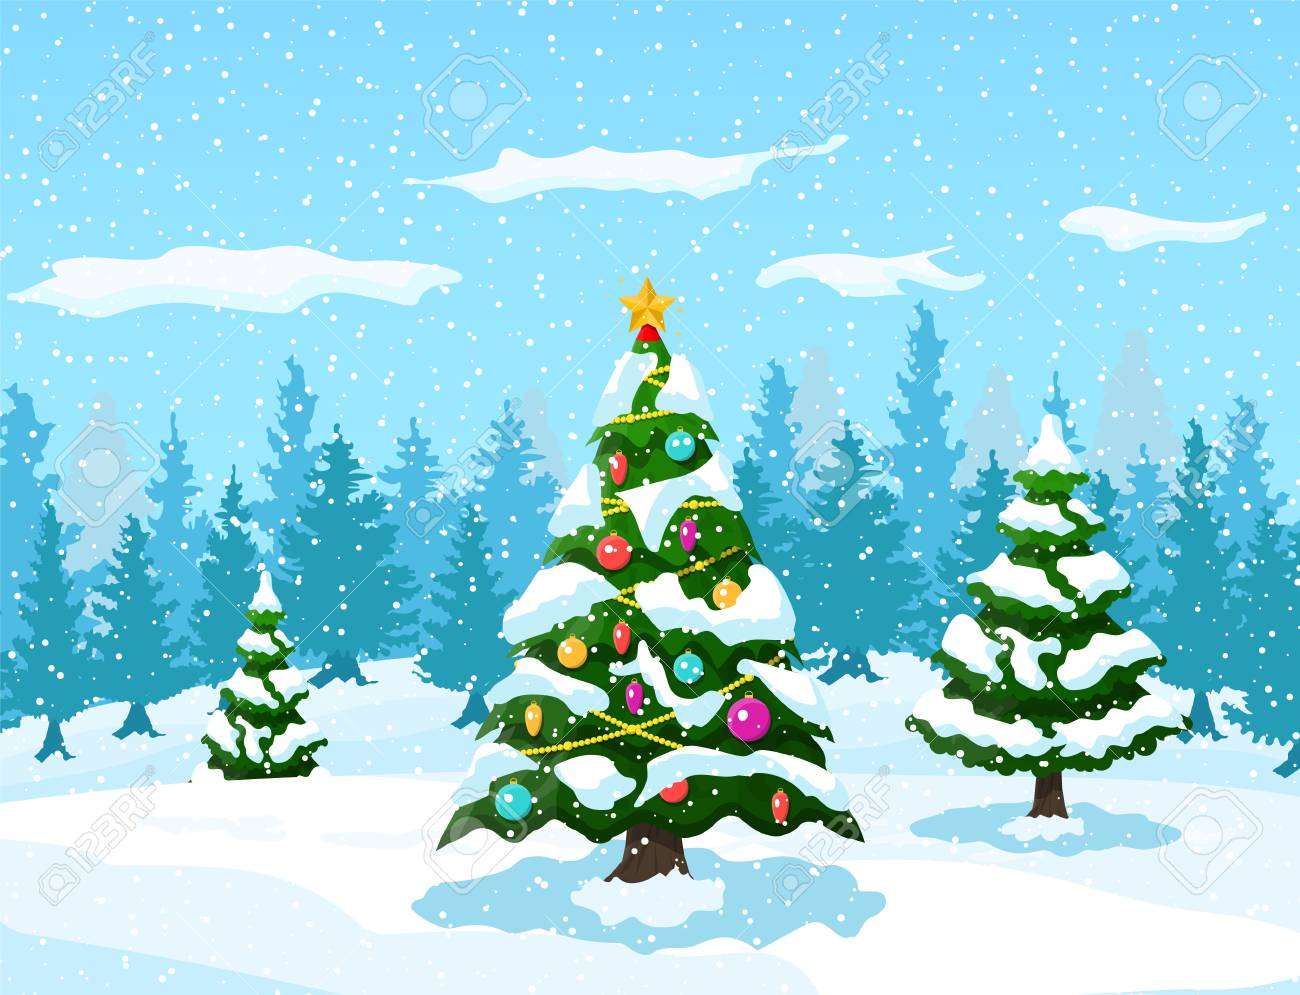 764 Christmas Background free clipart.